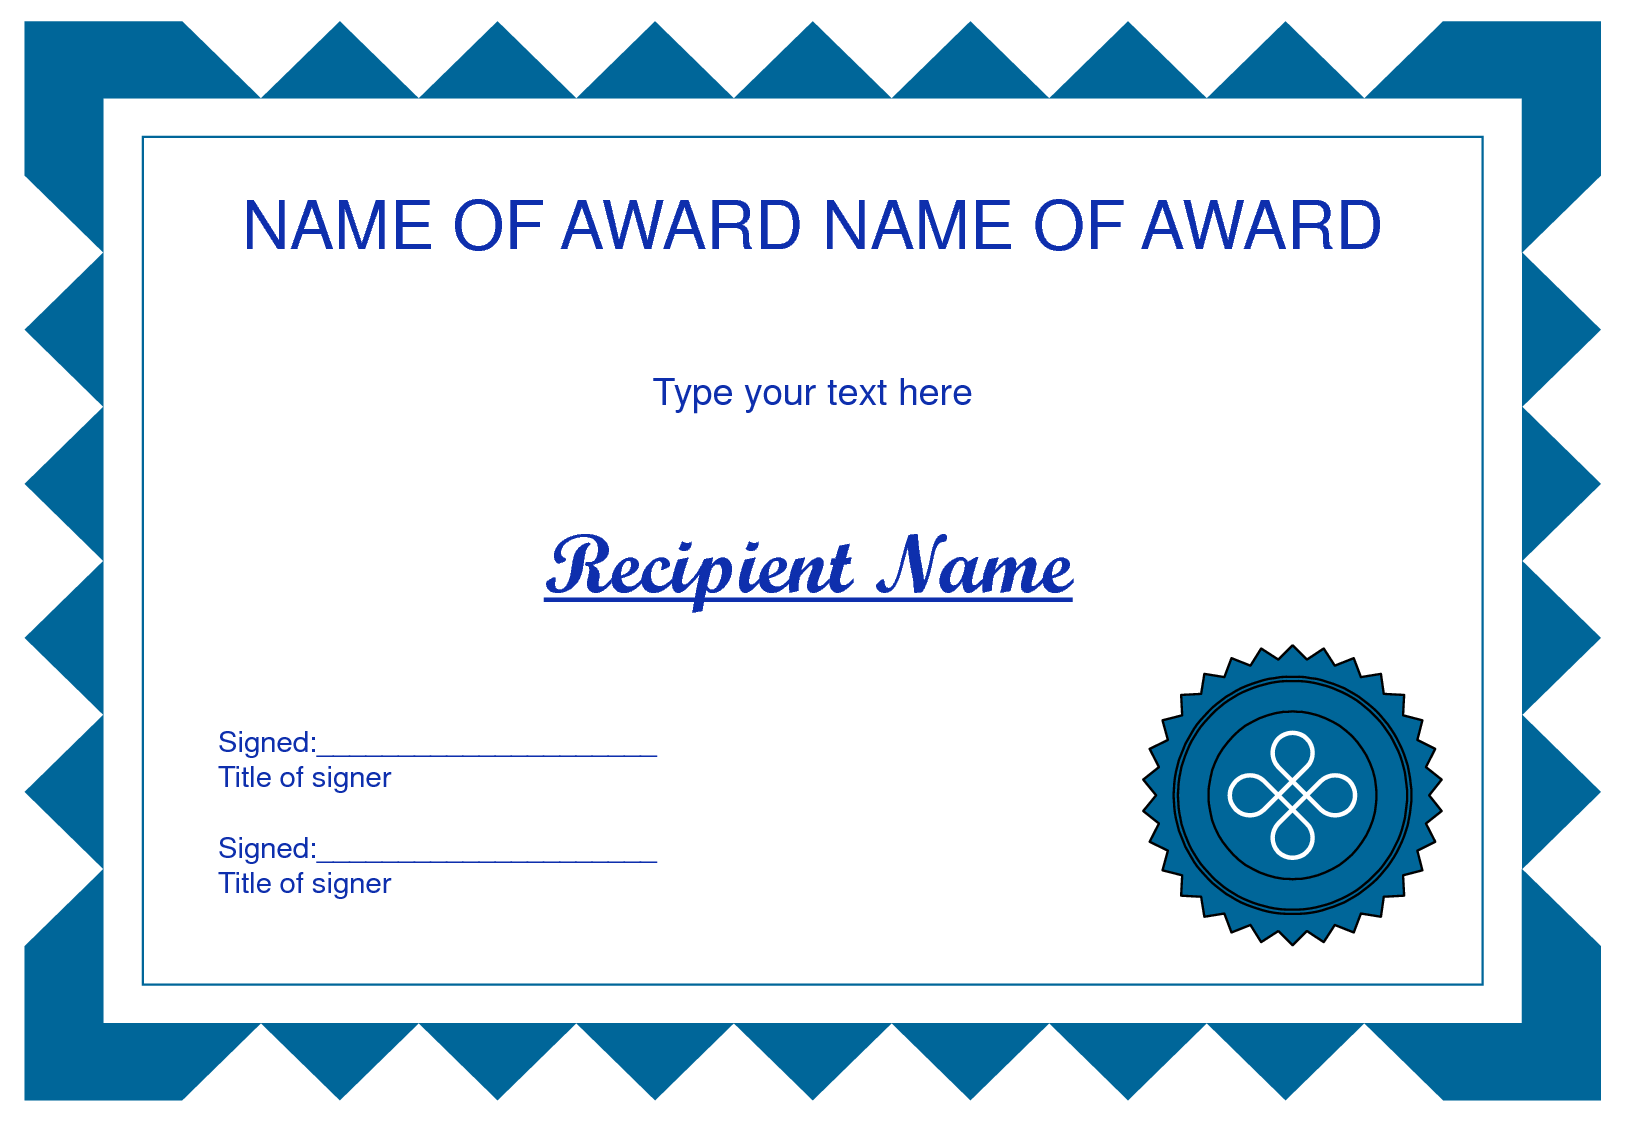 Awards and certificates clipart.